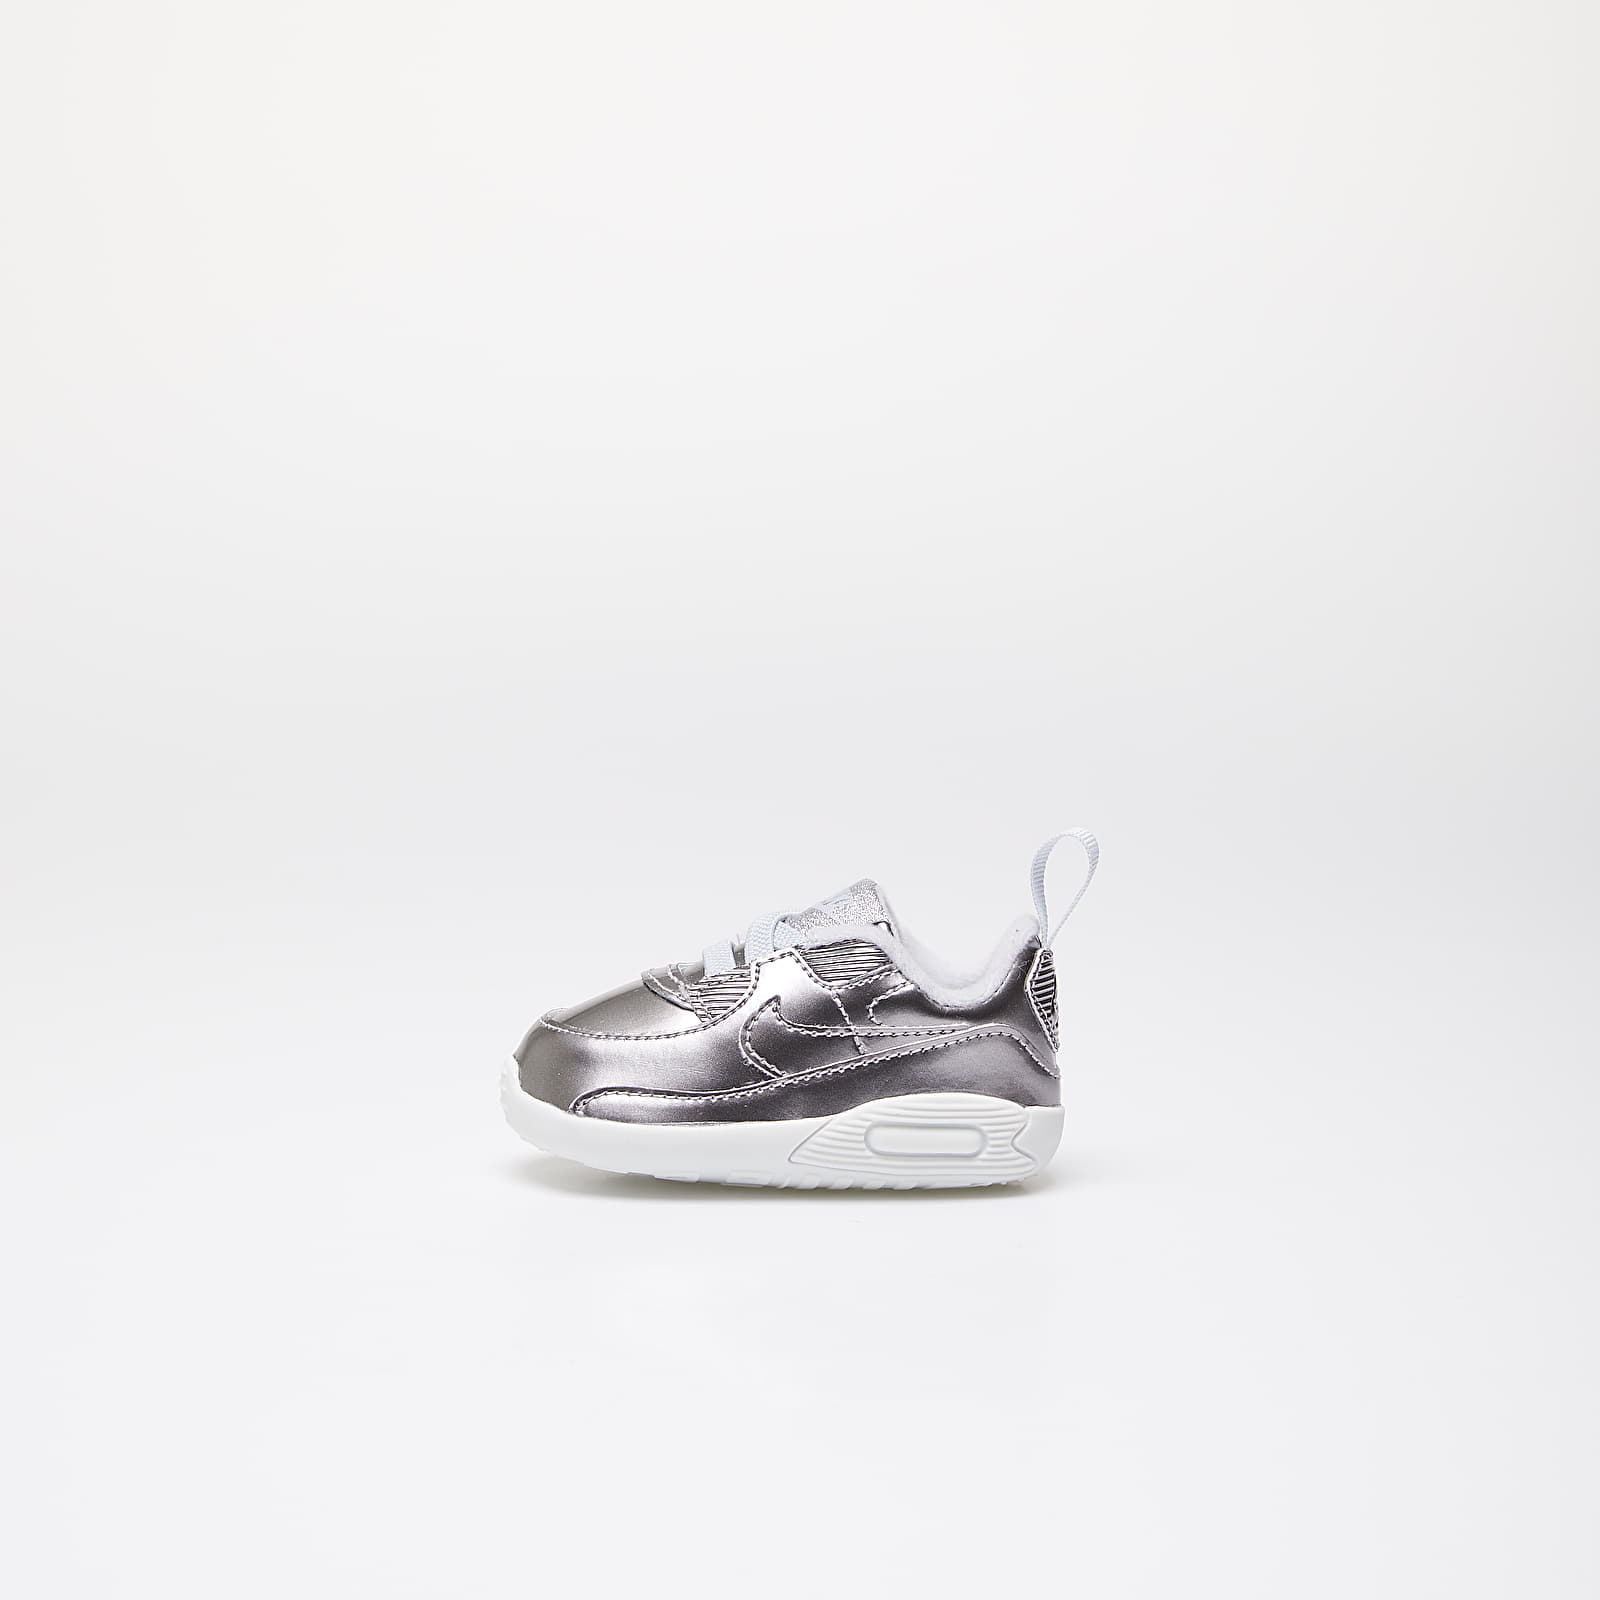 Chaussures et baskets enfants Nike Max 90 Crib QS Chrome/ Chrome-Pure Platinum-White